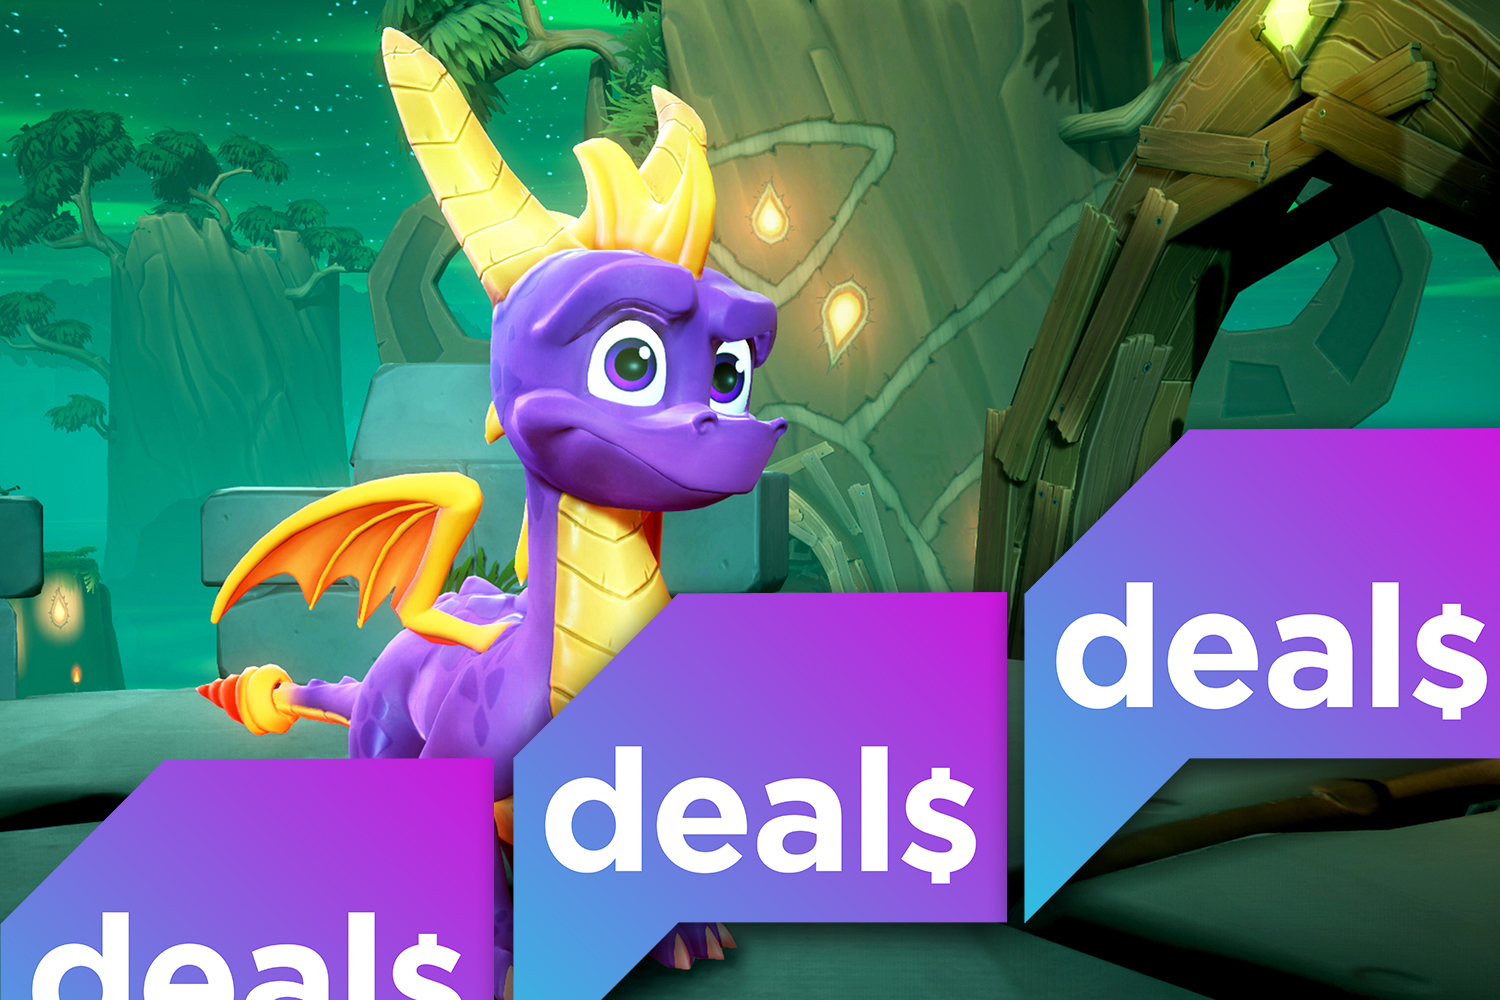 Spyro Reignited Trilogy, Pokémon: Let's Go, and a Humble Winter Sale are this week's best gaming deals